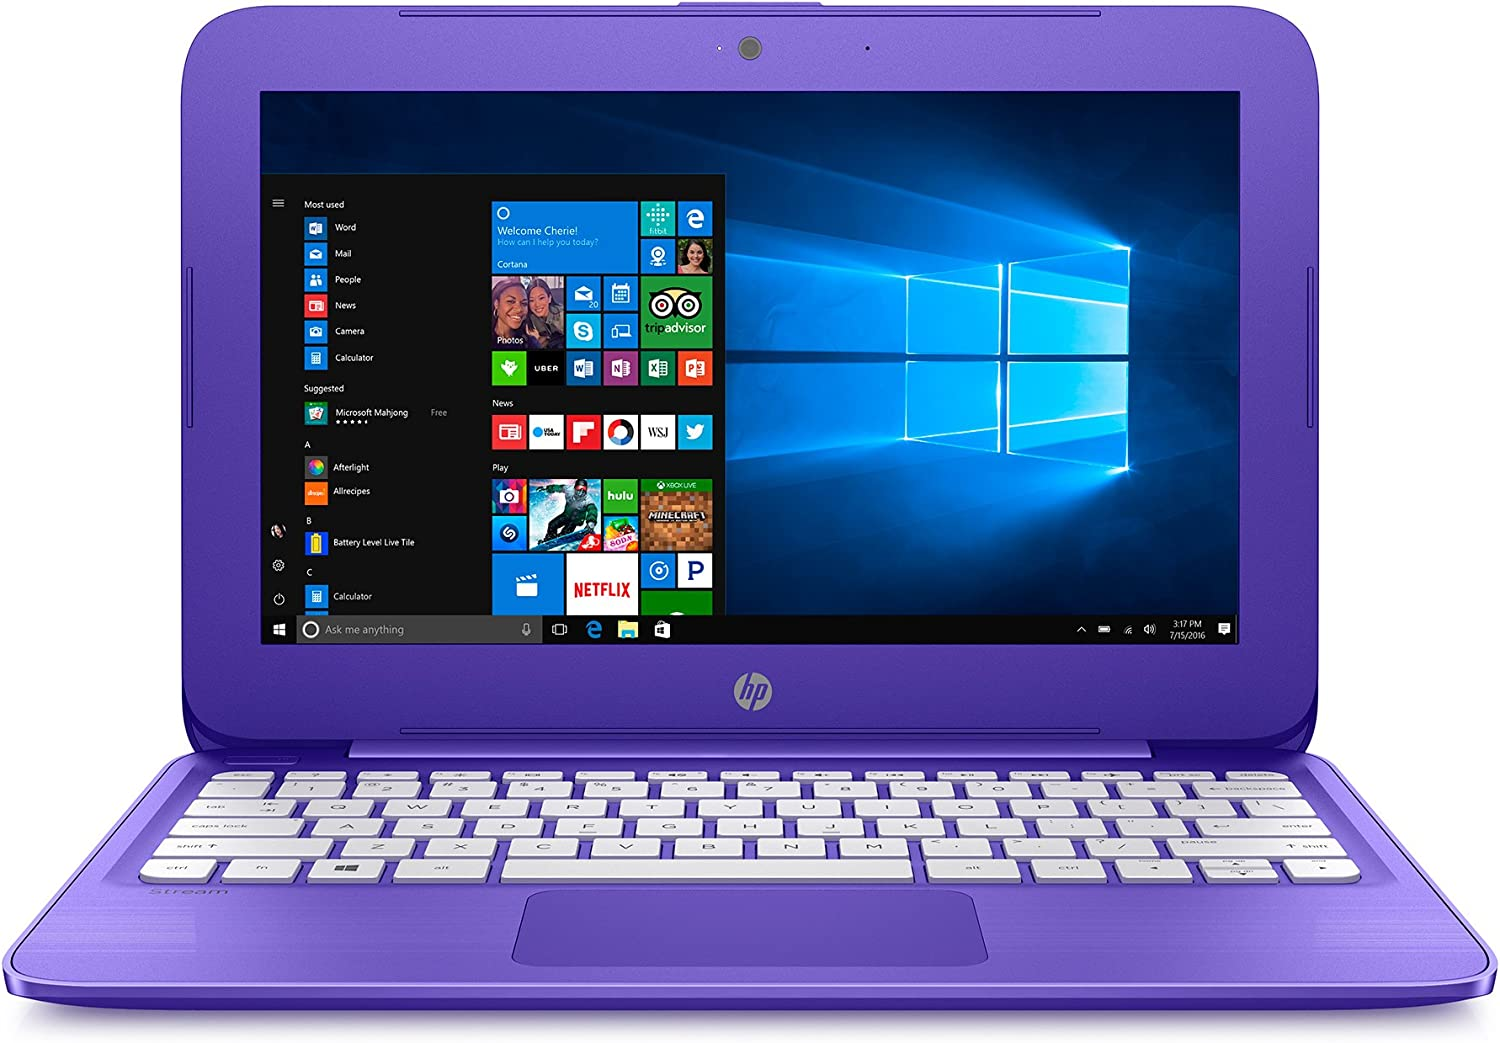 HP Stream Laptop PC 11-y020nr (Intel Celeron N3060, 4 GB RAM, 32 GB eMMC) with Office 365 Personal for one Year